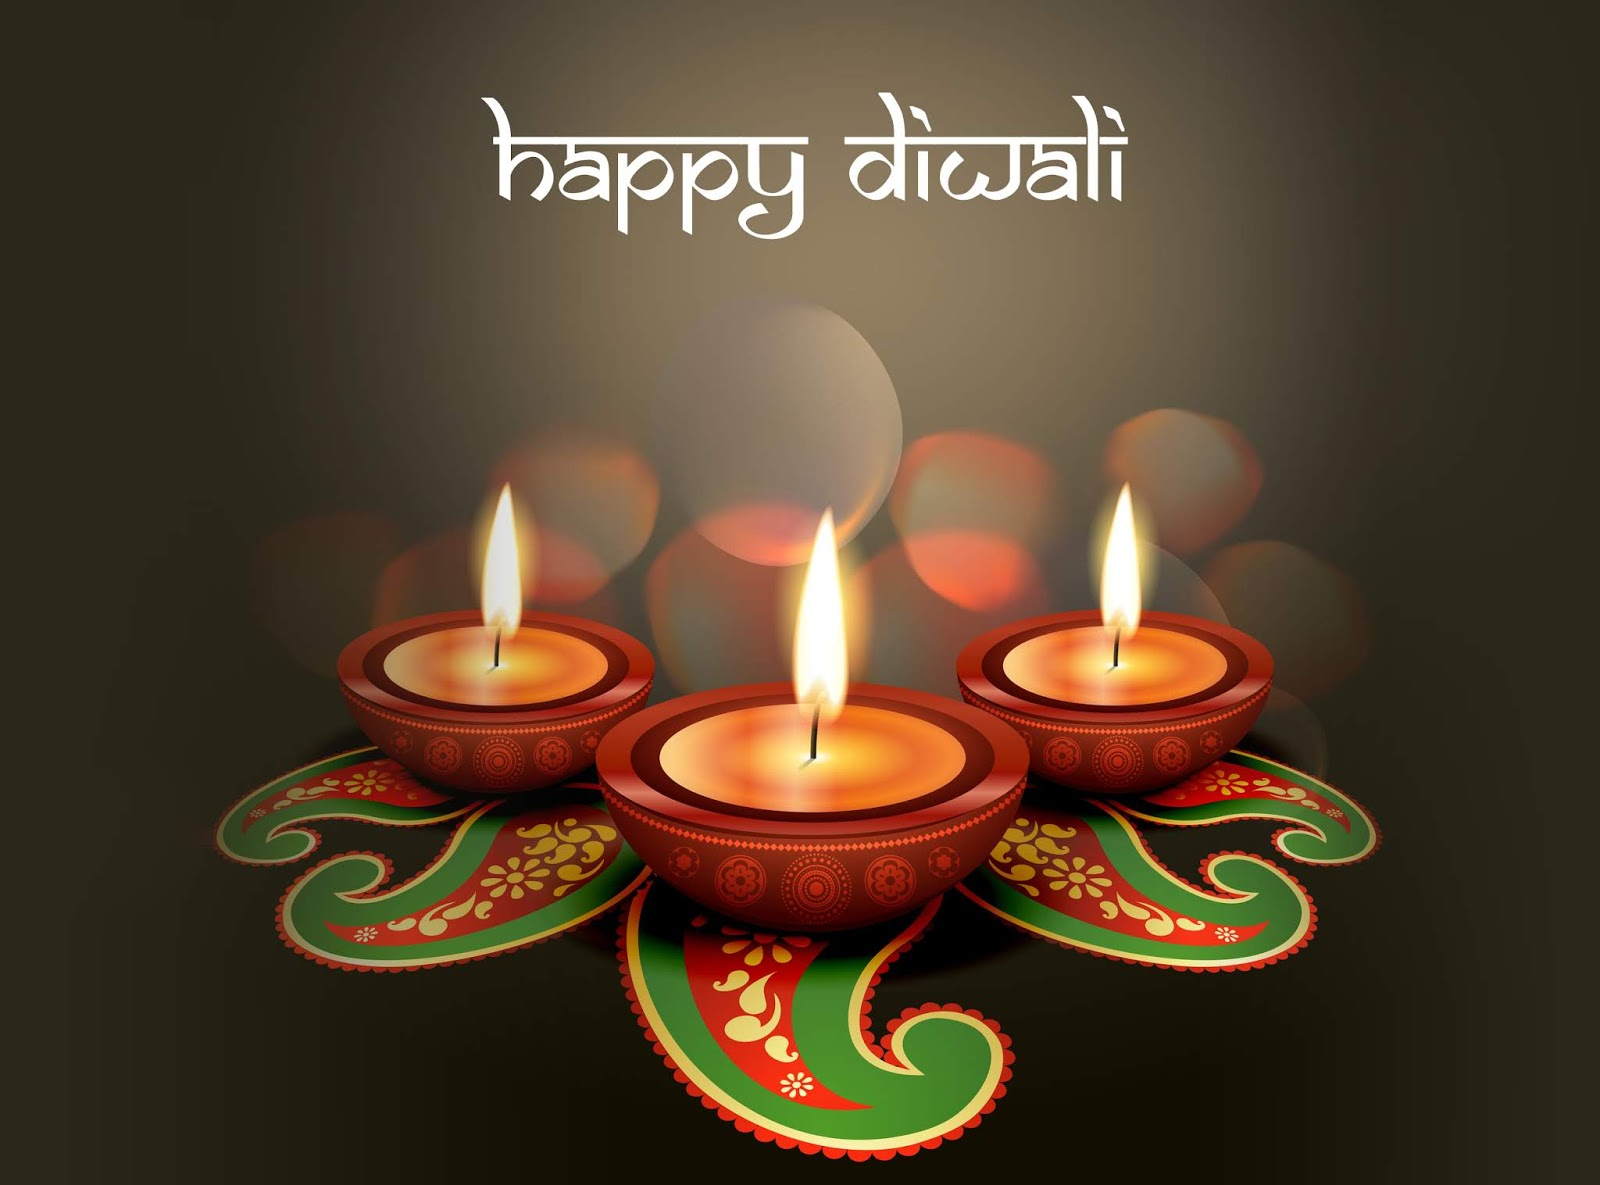 Happy Diwali Images for Facebook & Whatsapp